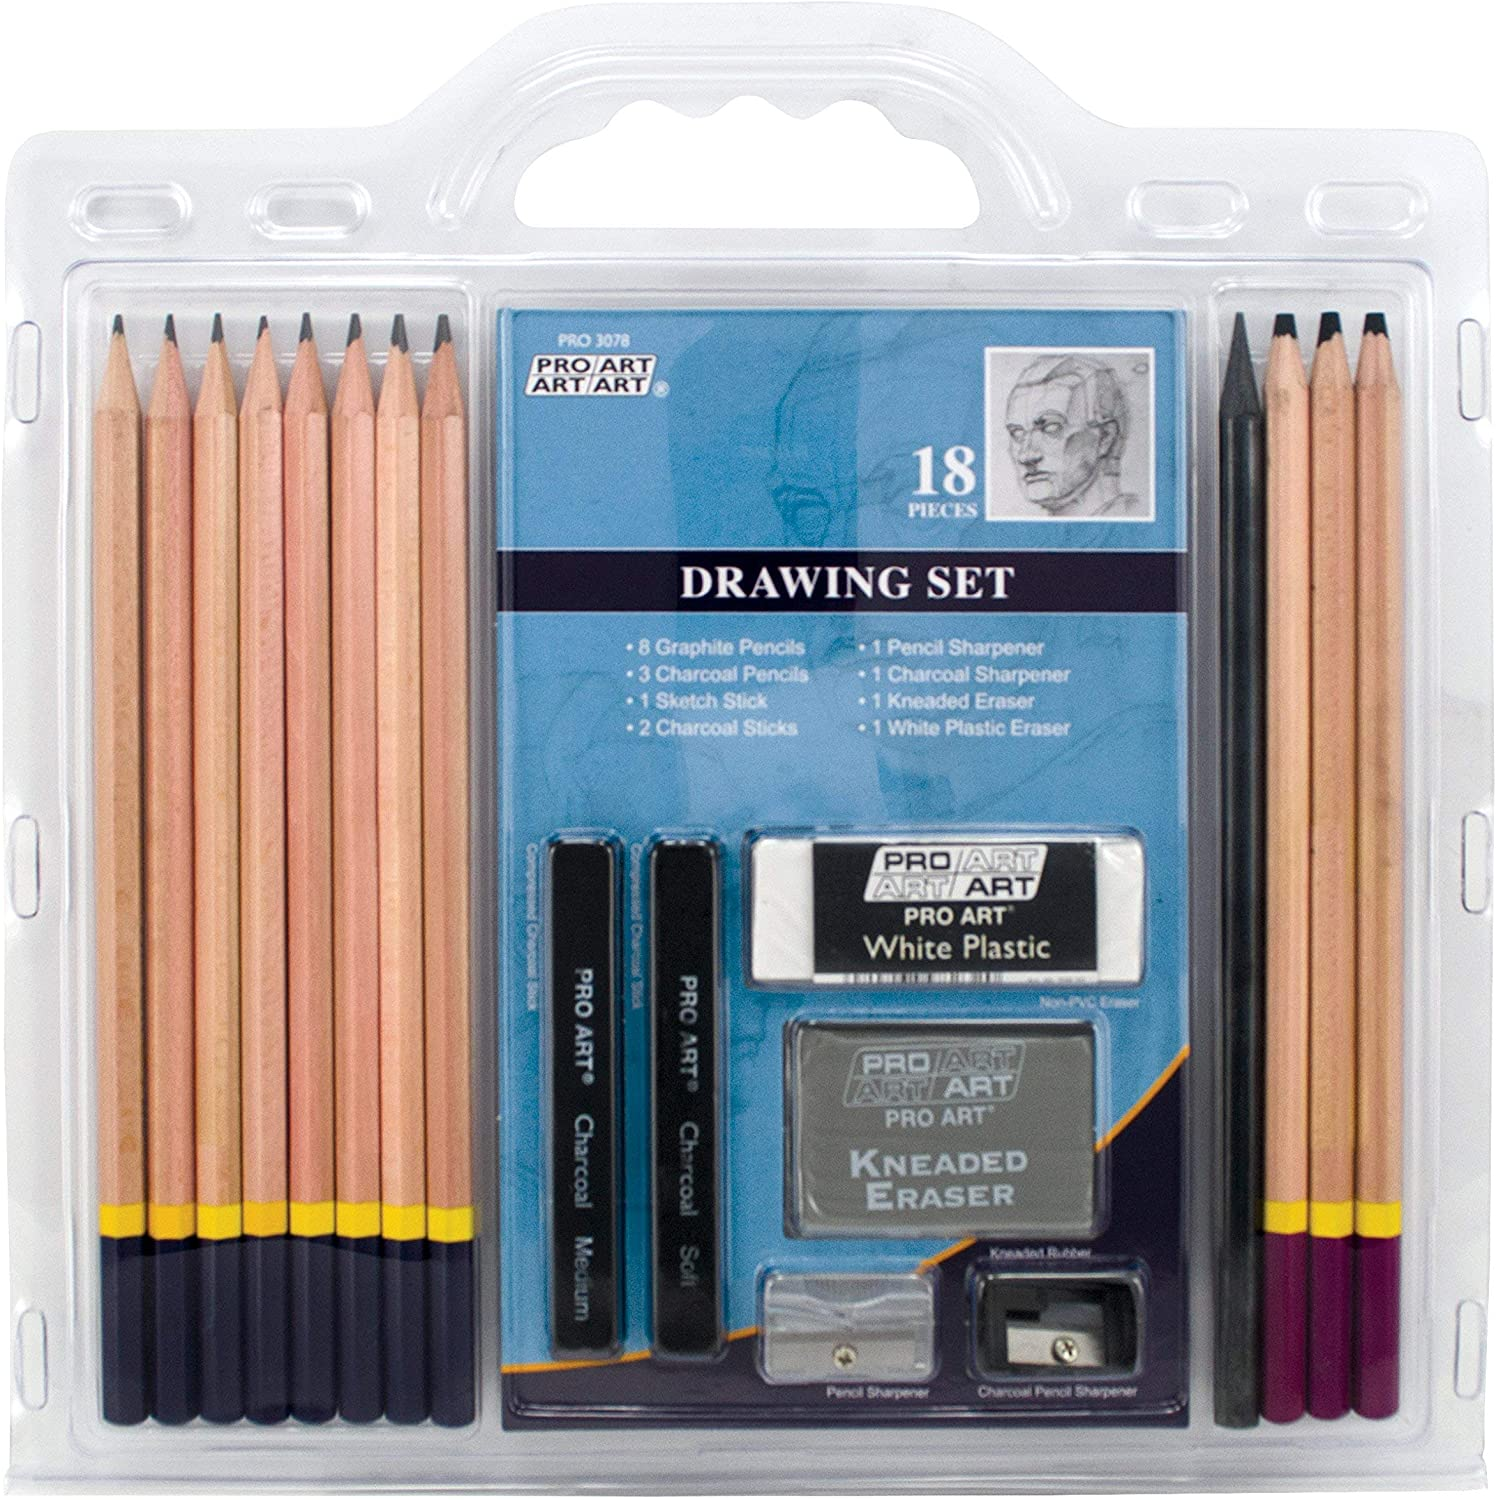 "PRO ART Pencil Set Sketch & Draw, 9.38"" x 9.38"" x 0.25"", Graphite & Charcoal"